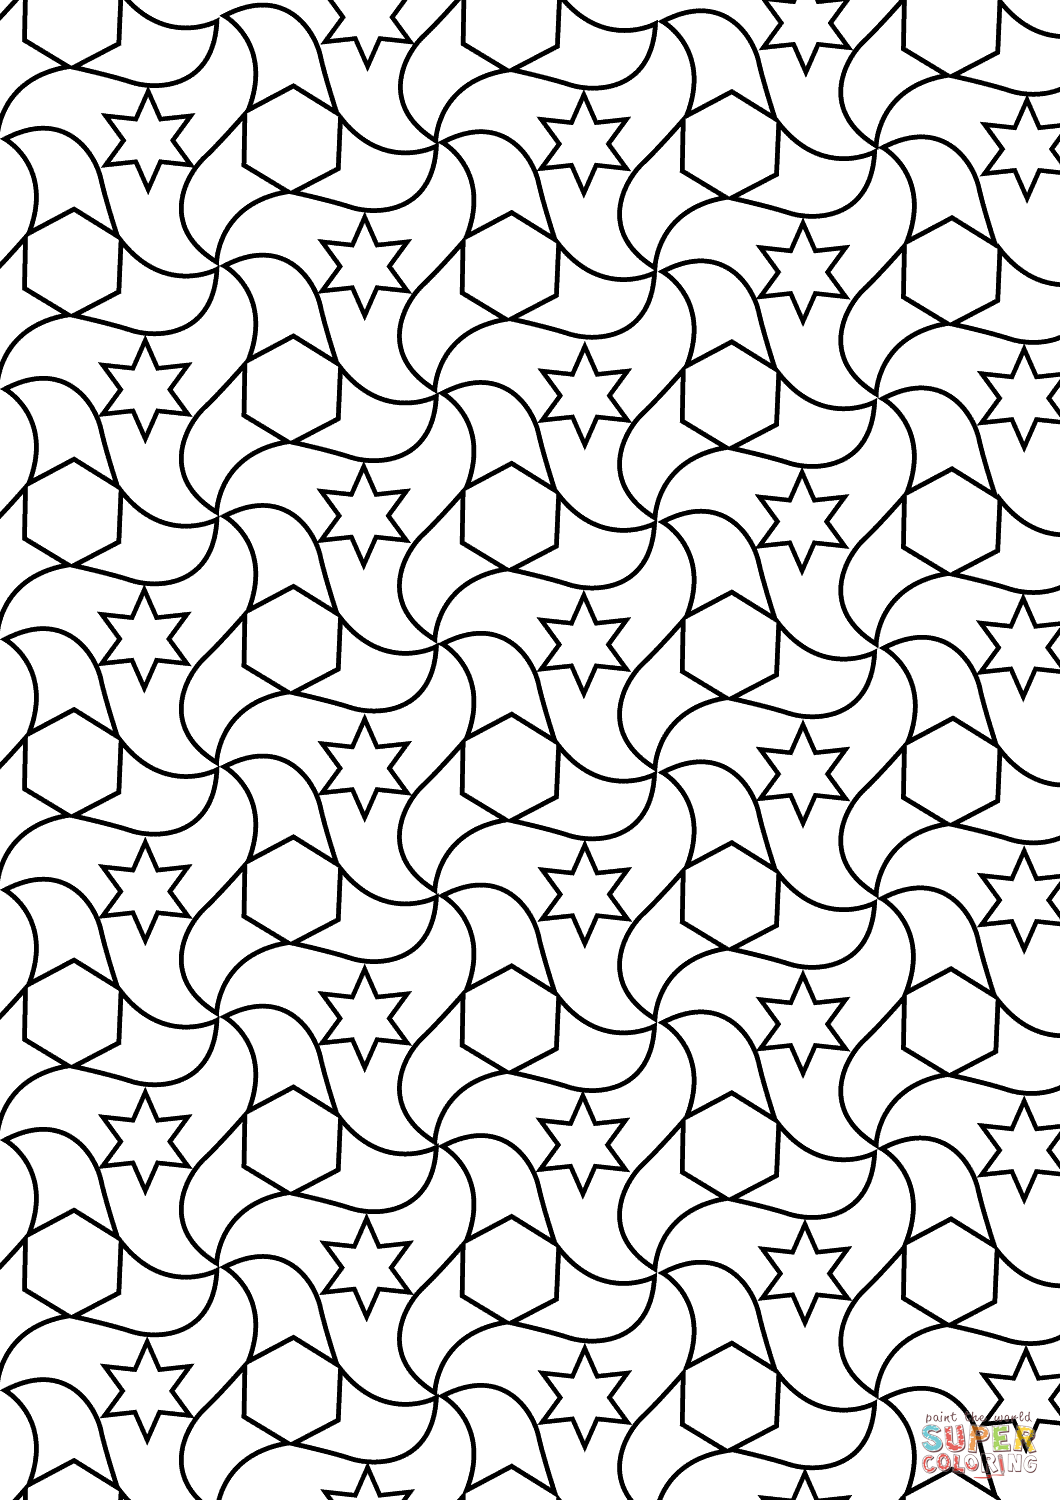 tessellation colouring pages tessellation drawing at getdrawings free download colouring pages tessellation